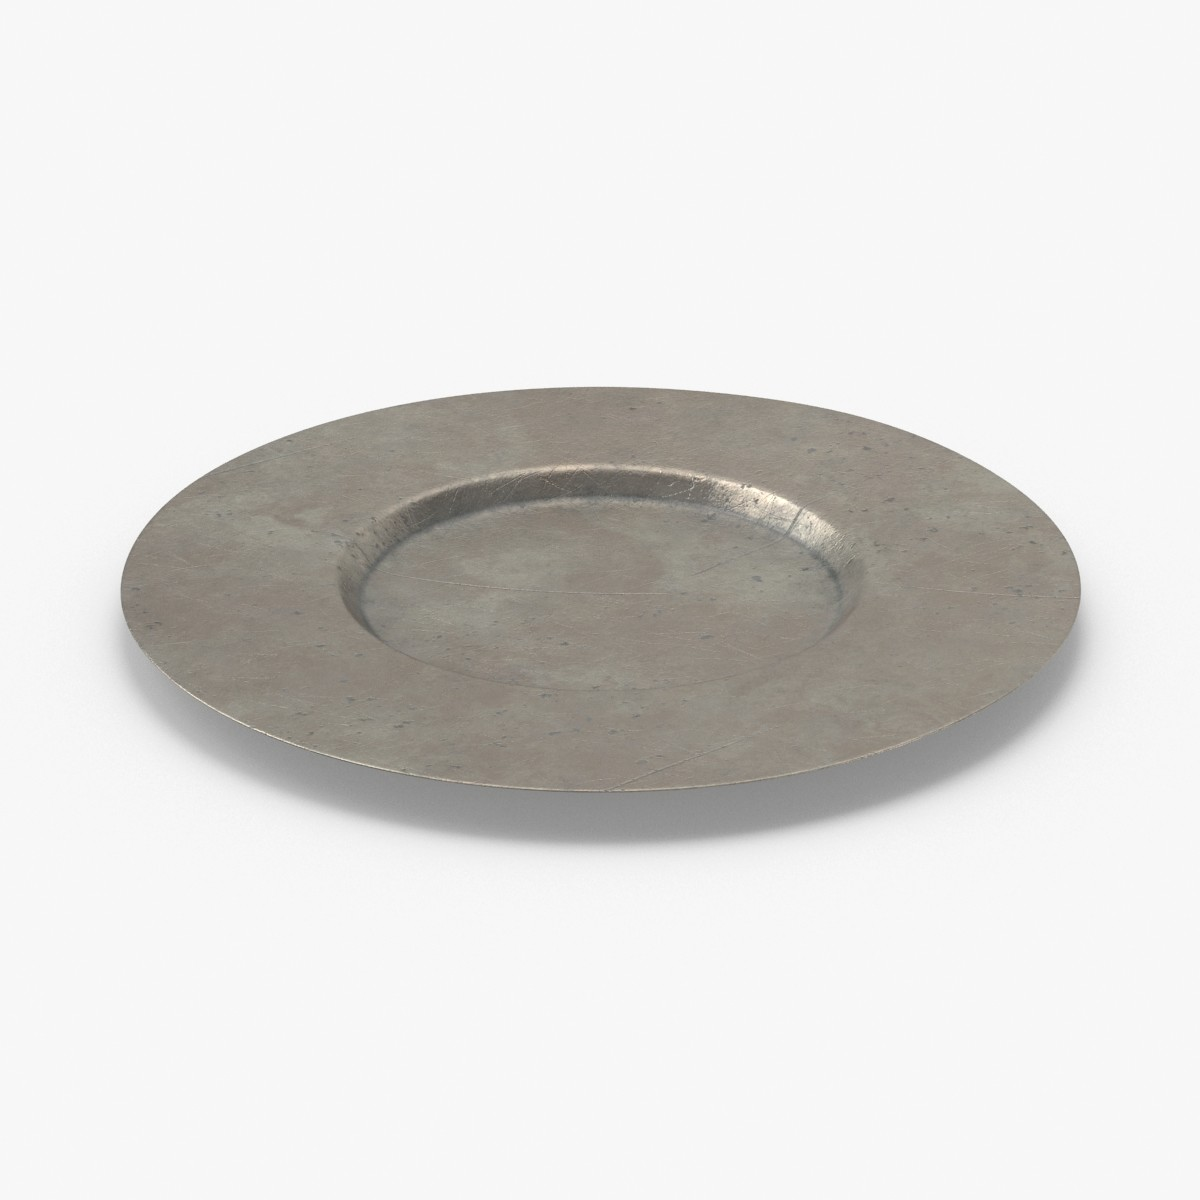 pewter-dishware---plate-02 3D